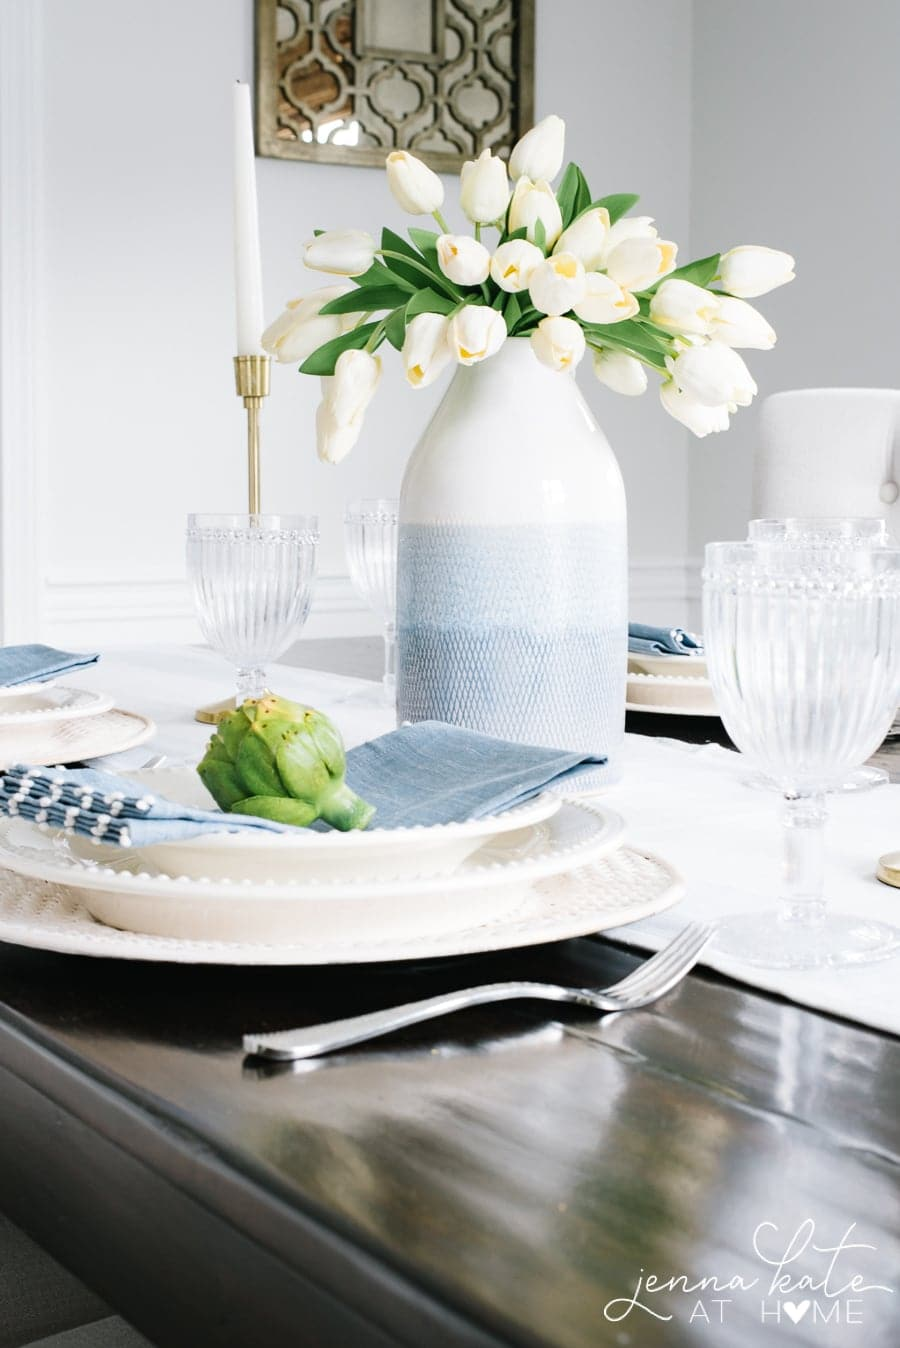 Table setting with a vase full of white tulips